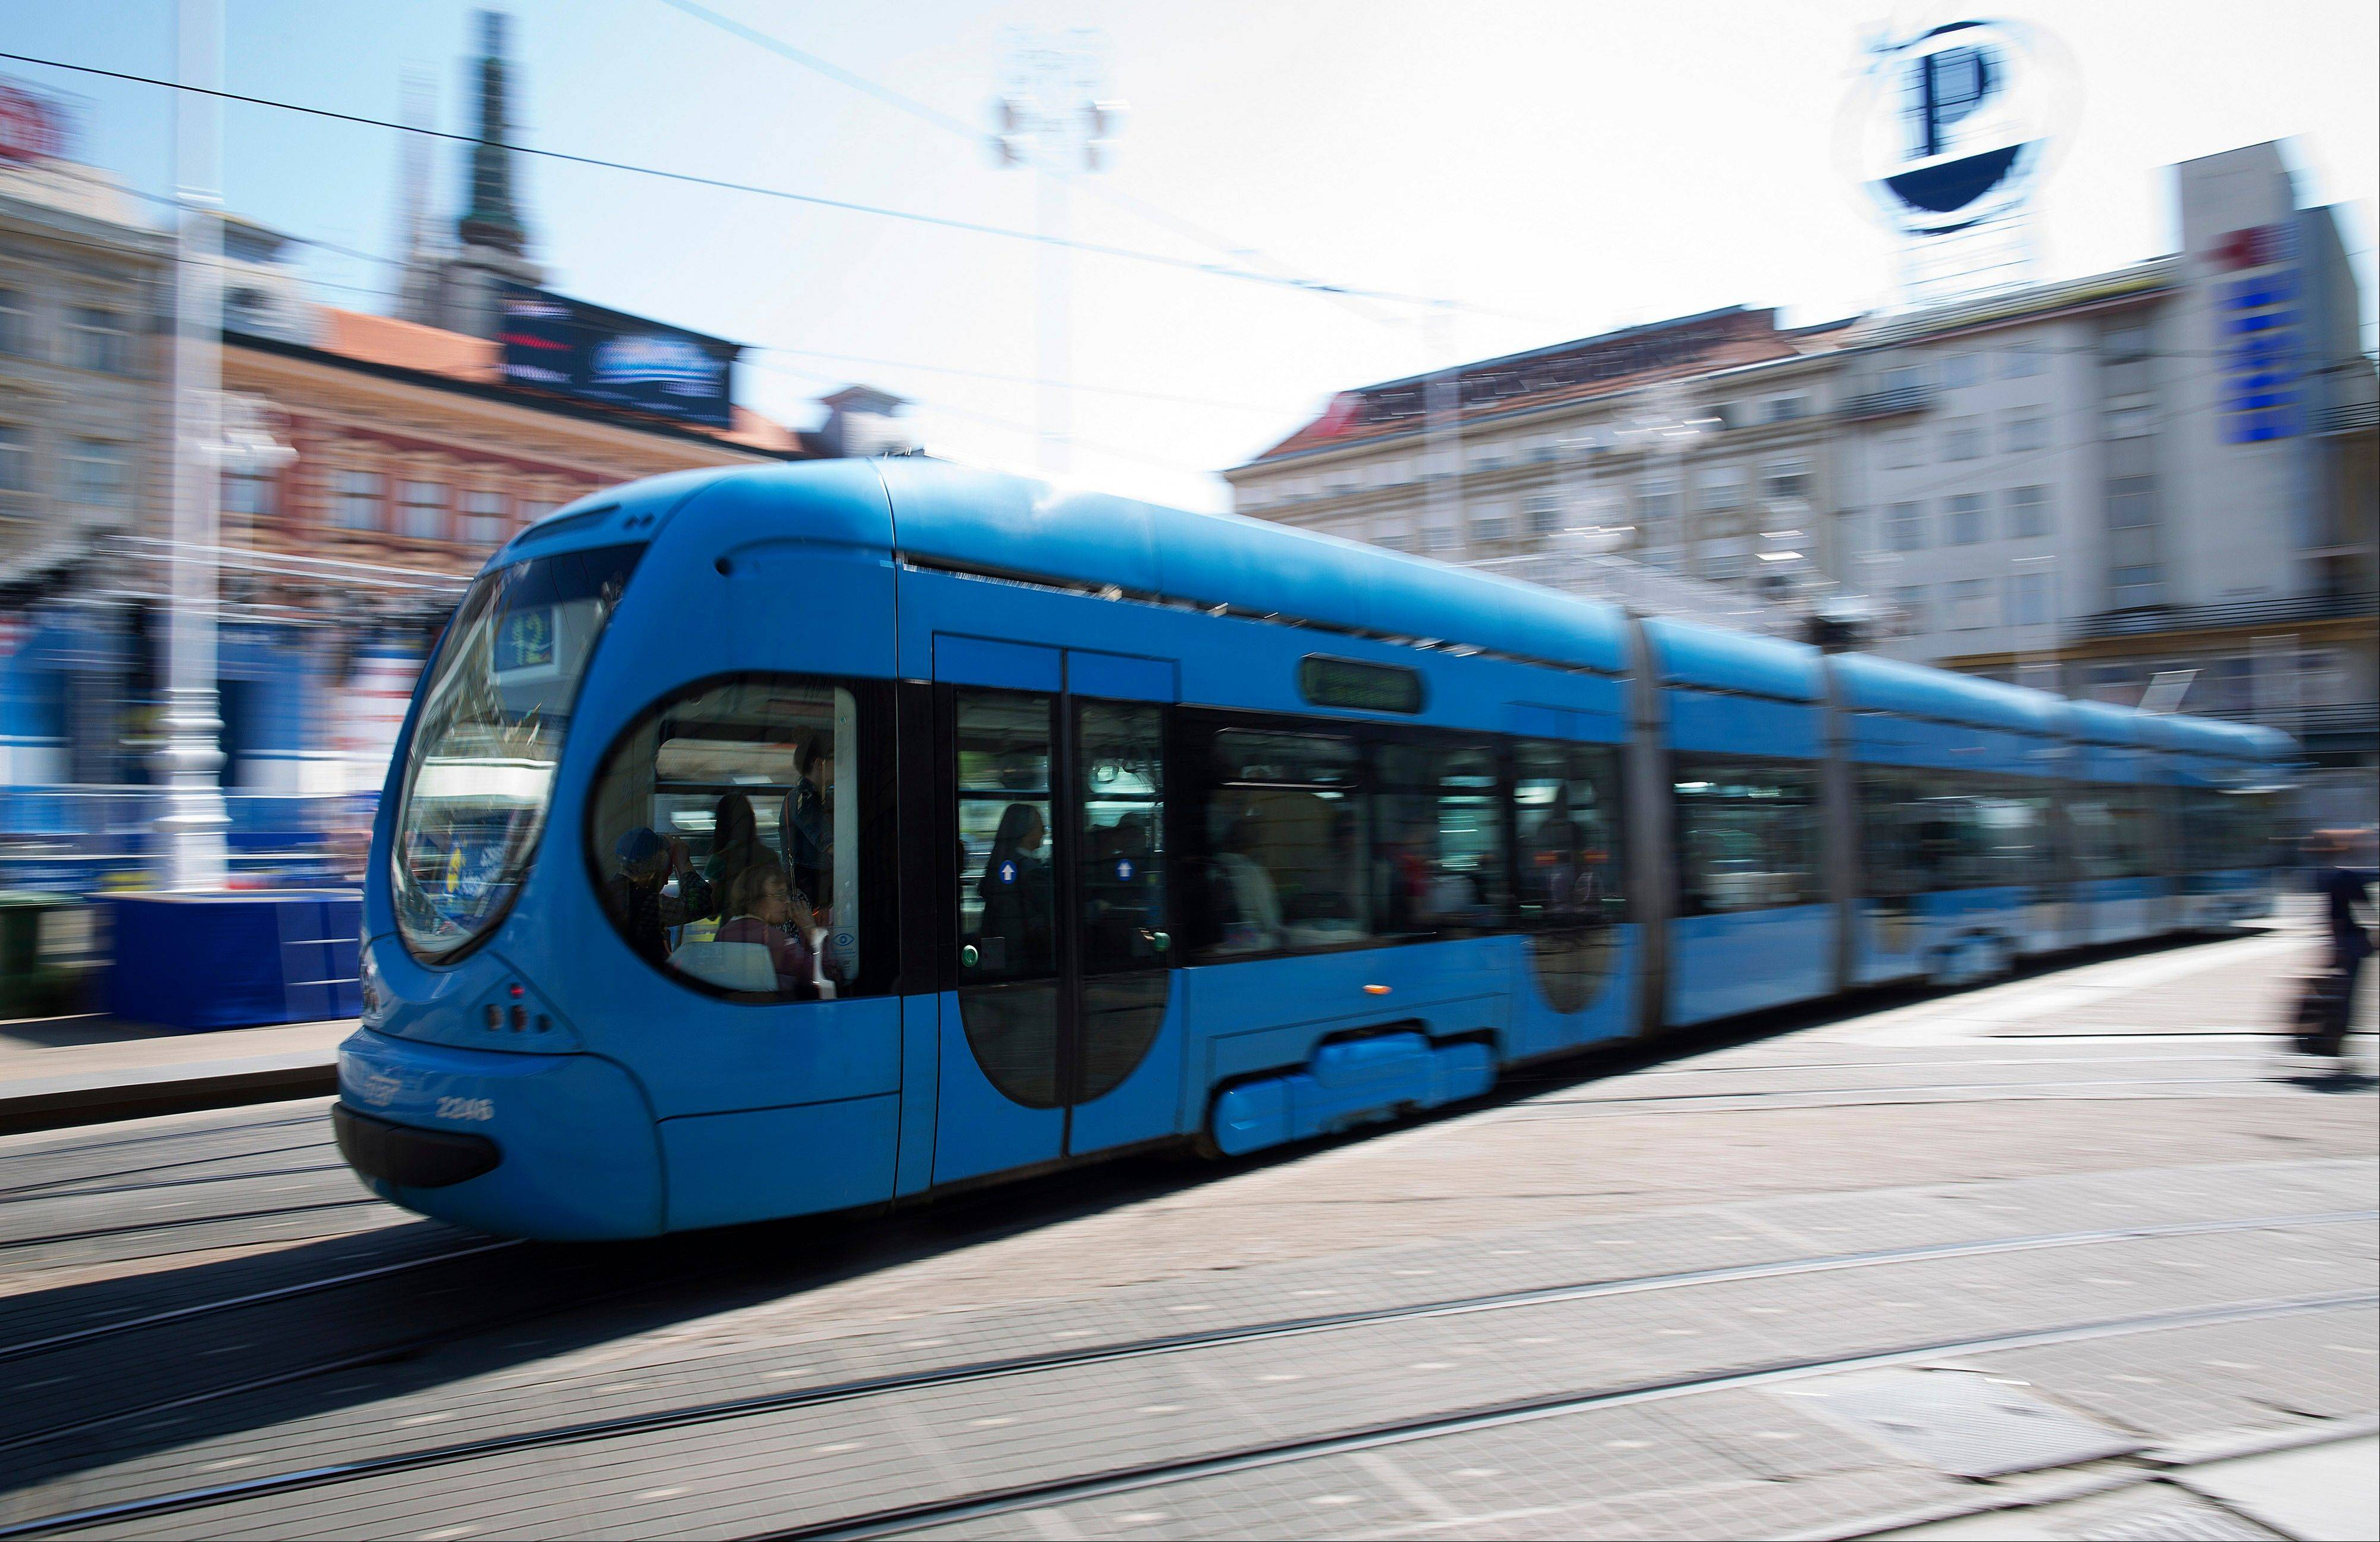 Commuters travel on a tram as it crosses Bana Jelacic Square in Zagreb, Croatia. Croatia will become the EU's 28th member next week as the world's largest trading bloc expands for the first time since Bulgaria and Romania entered in 2007.